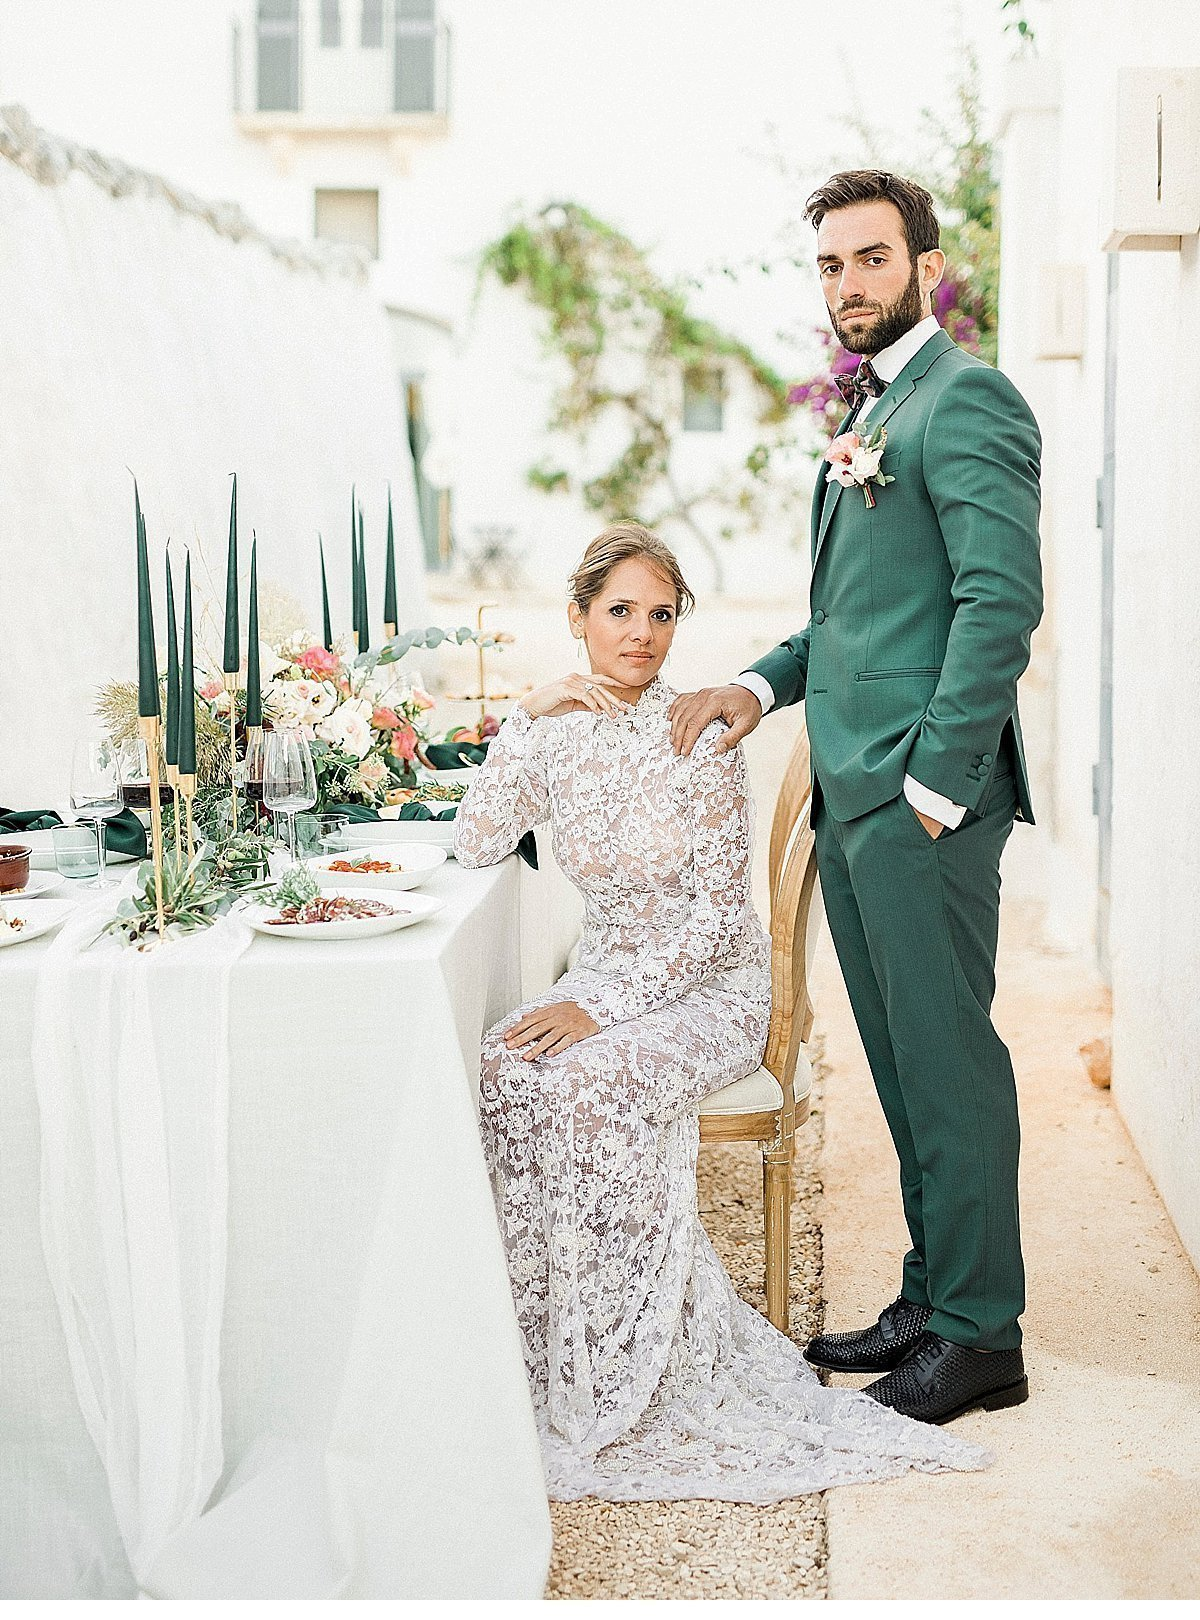 Elegant And Sophisticated Wedding In Jewel Tones In Paros Table Setting And Couple